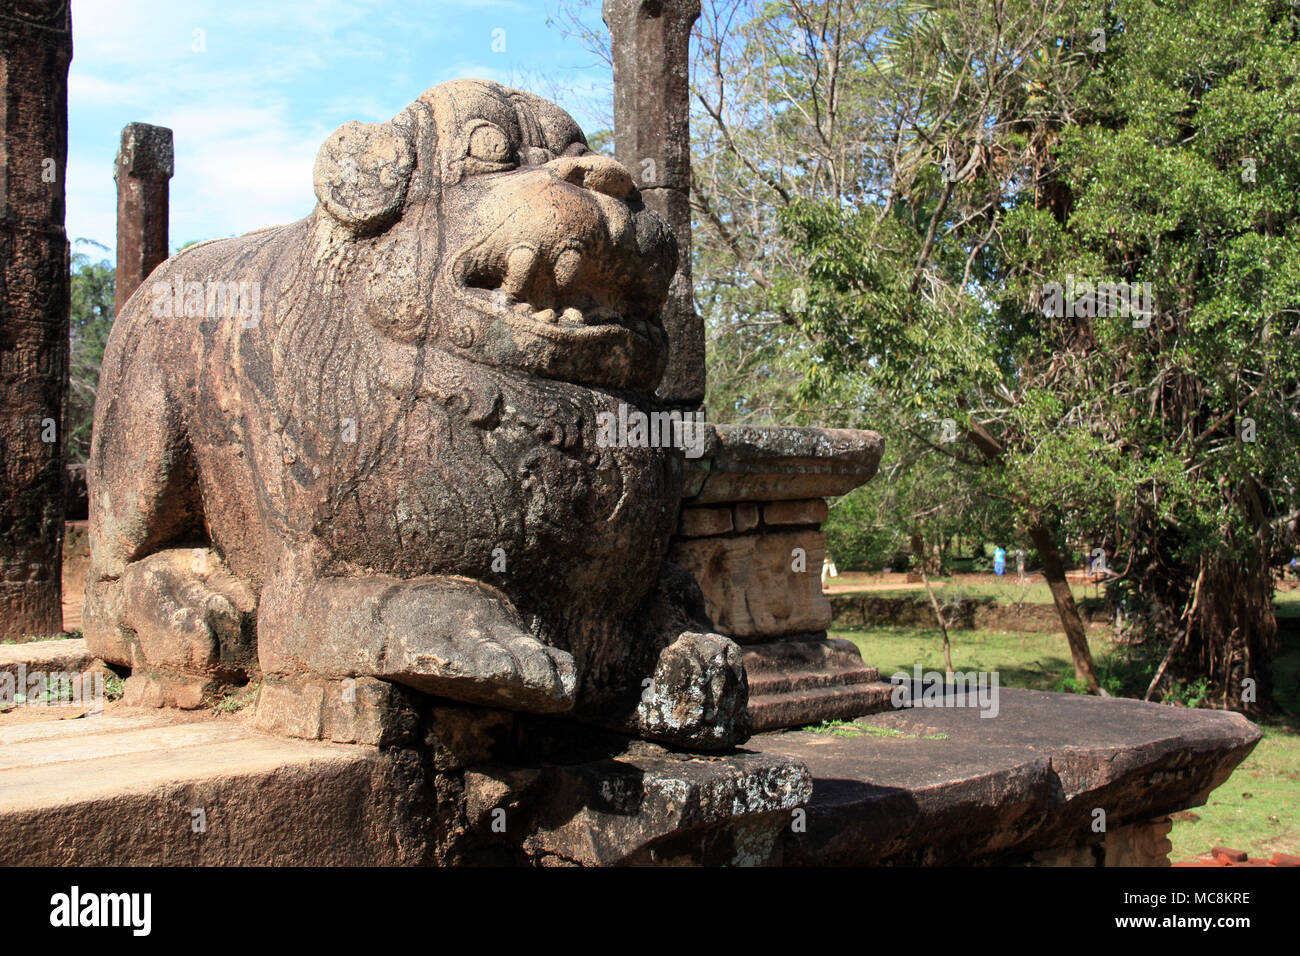 Polonnaruwa, a World Heritage Site in Sri Lanka, is an ancient city and the former capital of the Kingdom of Polonnaruwa. - Stock Image